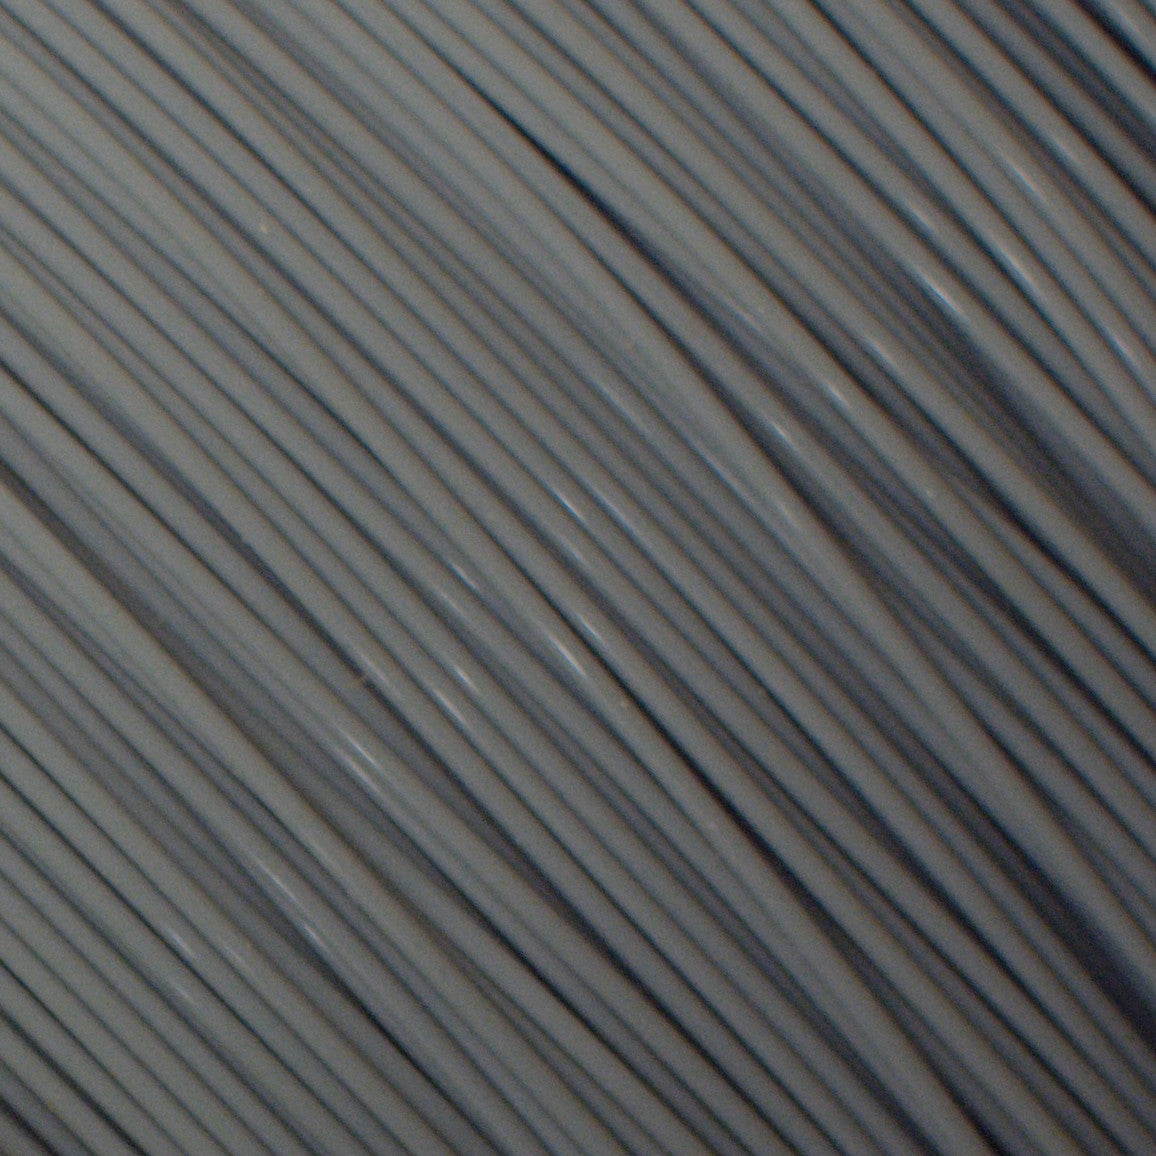 PLA 1.75mm - Grey